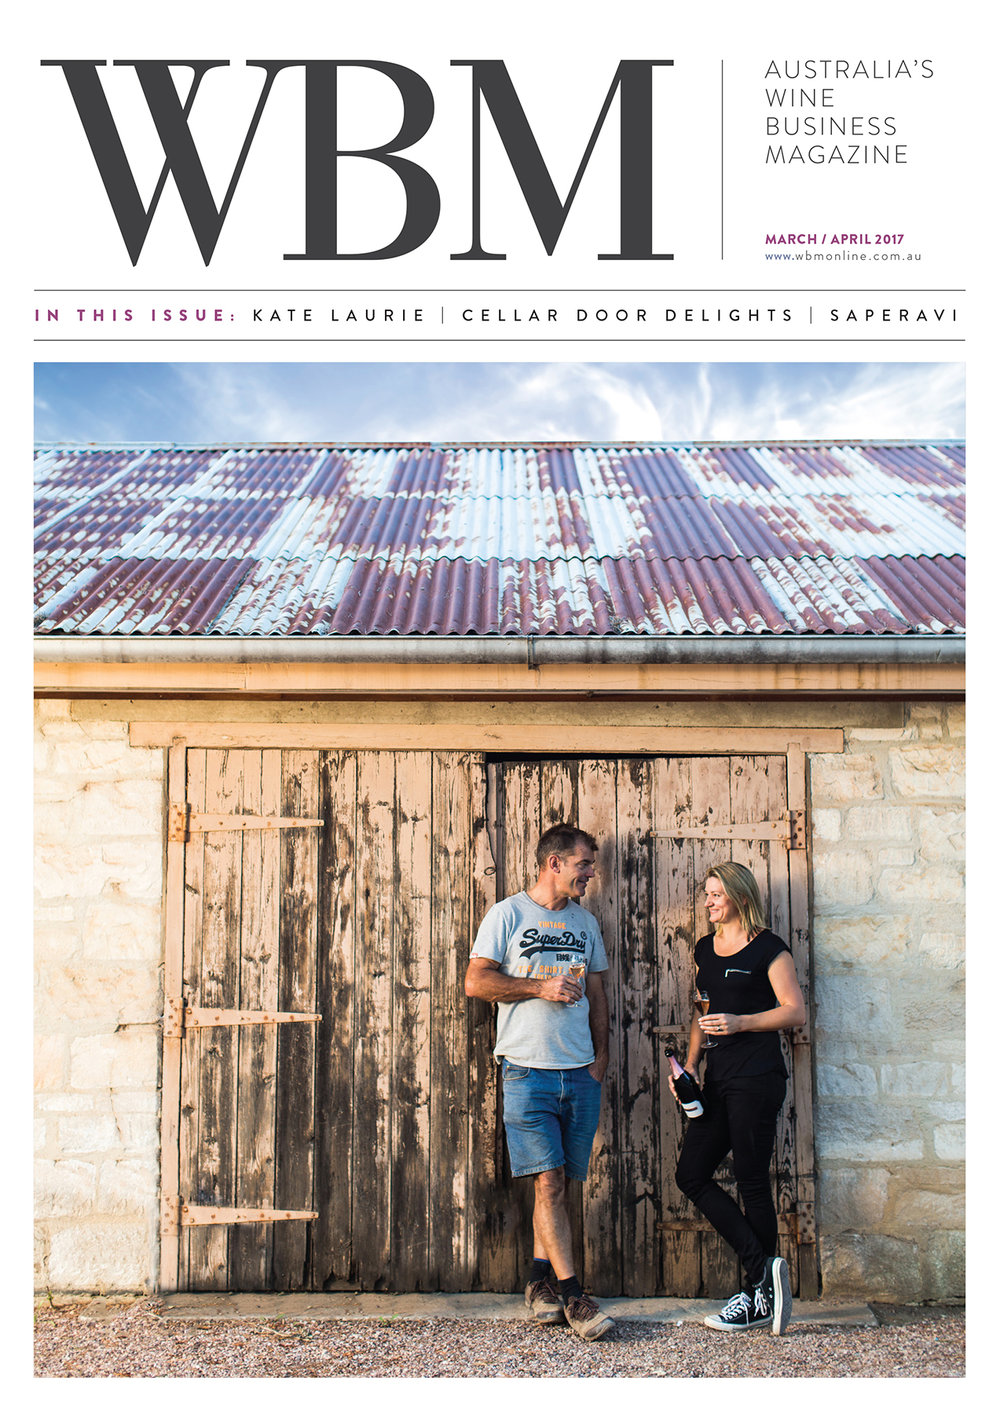 WBM 1703 March April 2017 cover.jpg